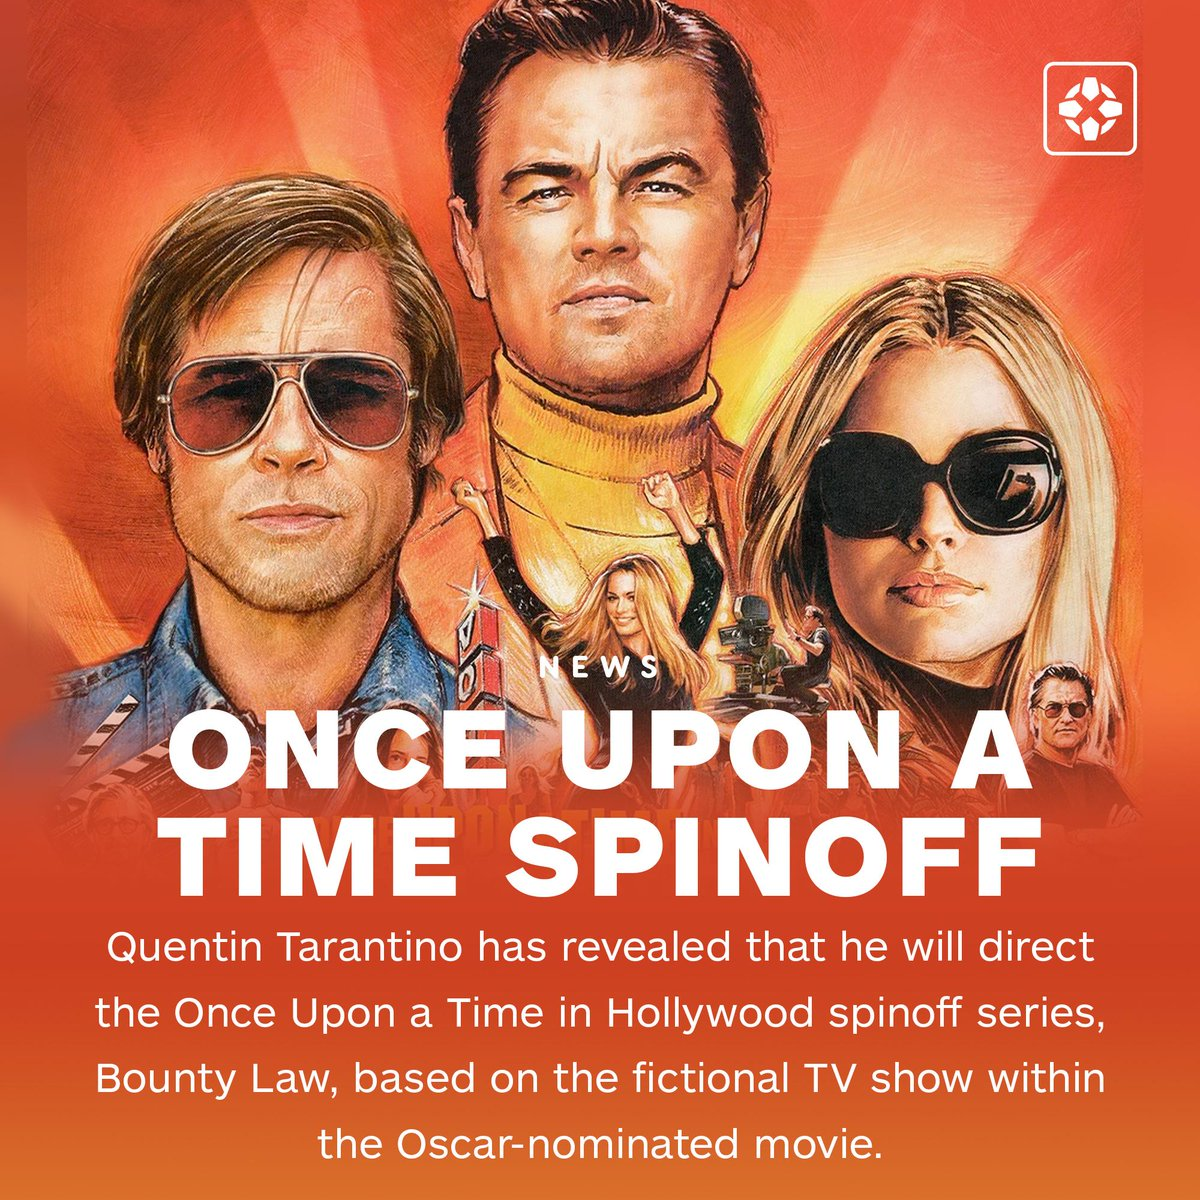 Quentin Tarantino revealed he will direct Bounty Law, a television spinoff based on Once Upon a Time in Hollywood's fictional show. <br>http://pic.twitter.com/6uEI3Rnh2h